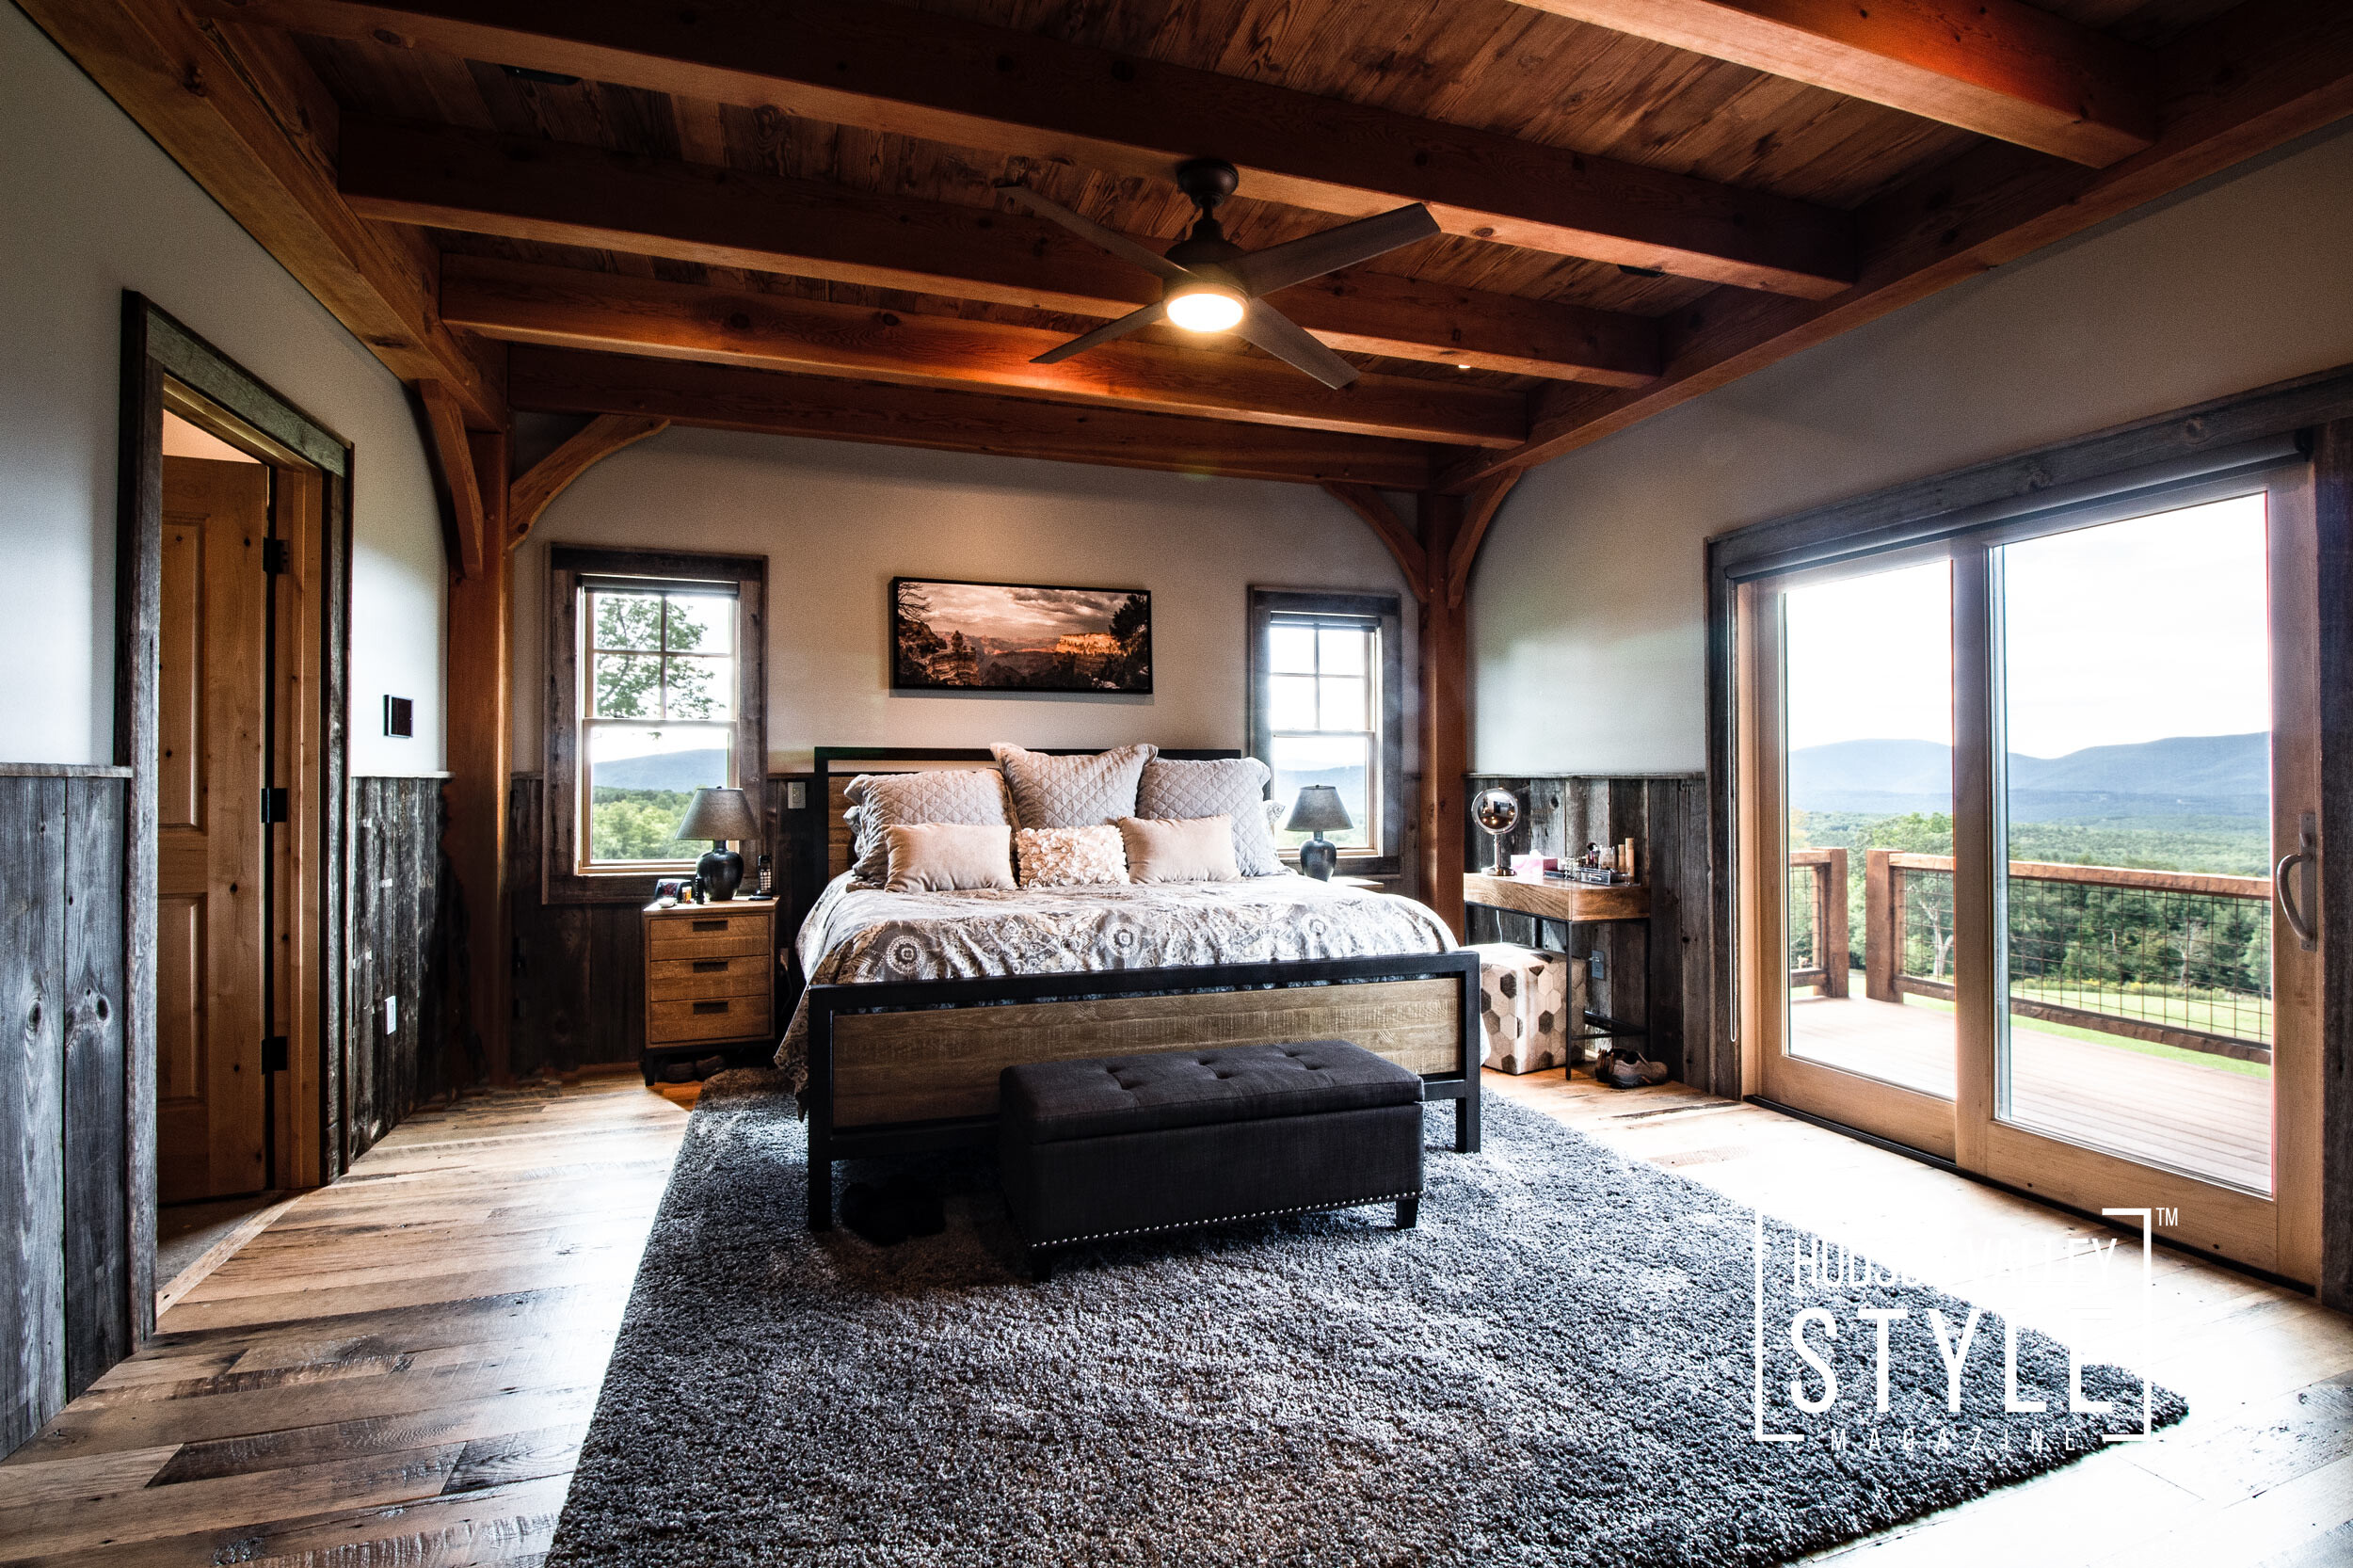 Are You Considering Professional Real Estate Photography for Your Hudson Valley Home? – Presented by Duncan Avenue Studios – Hudson Valley Real Estate Photography